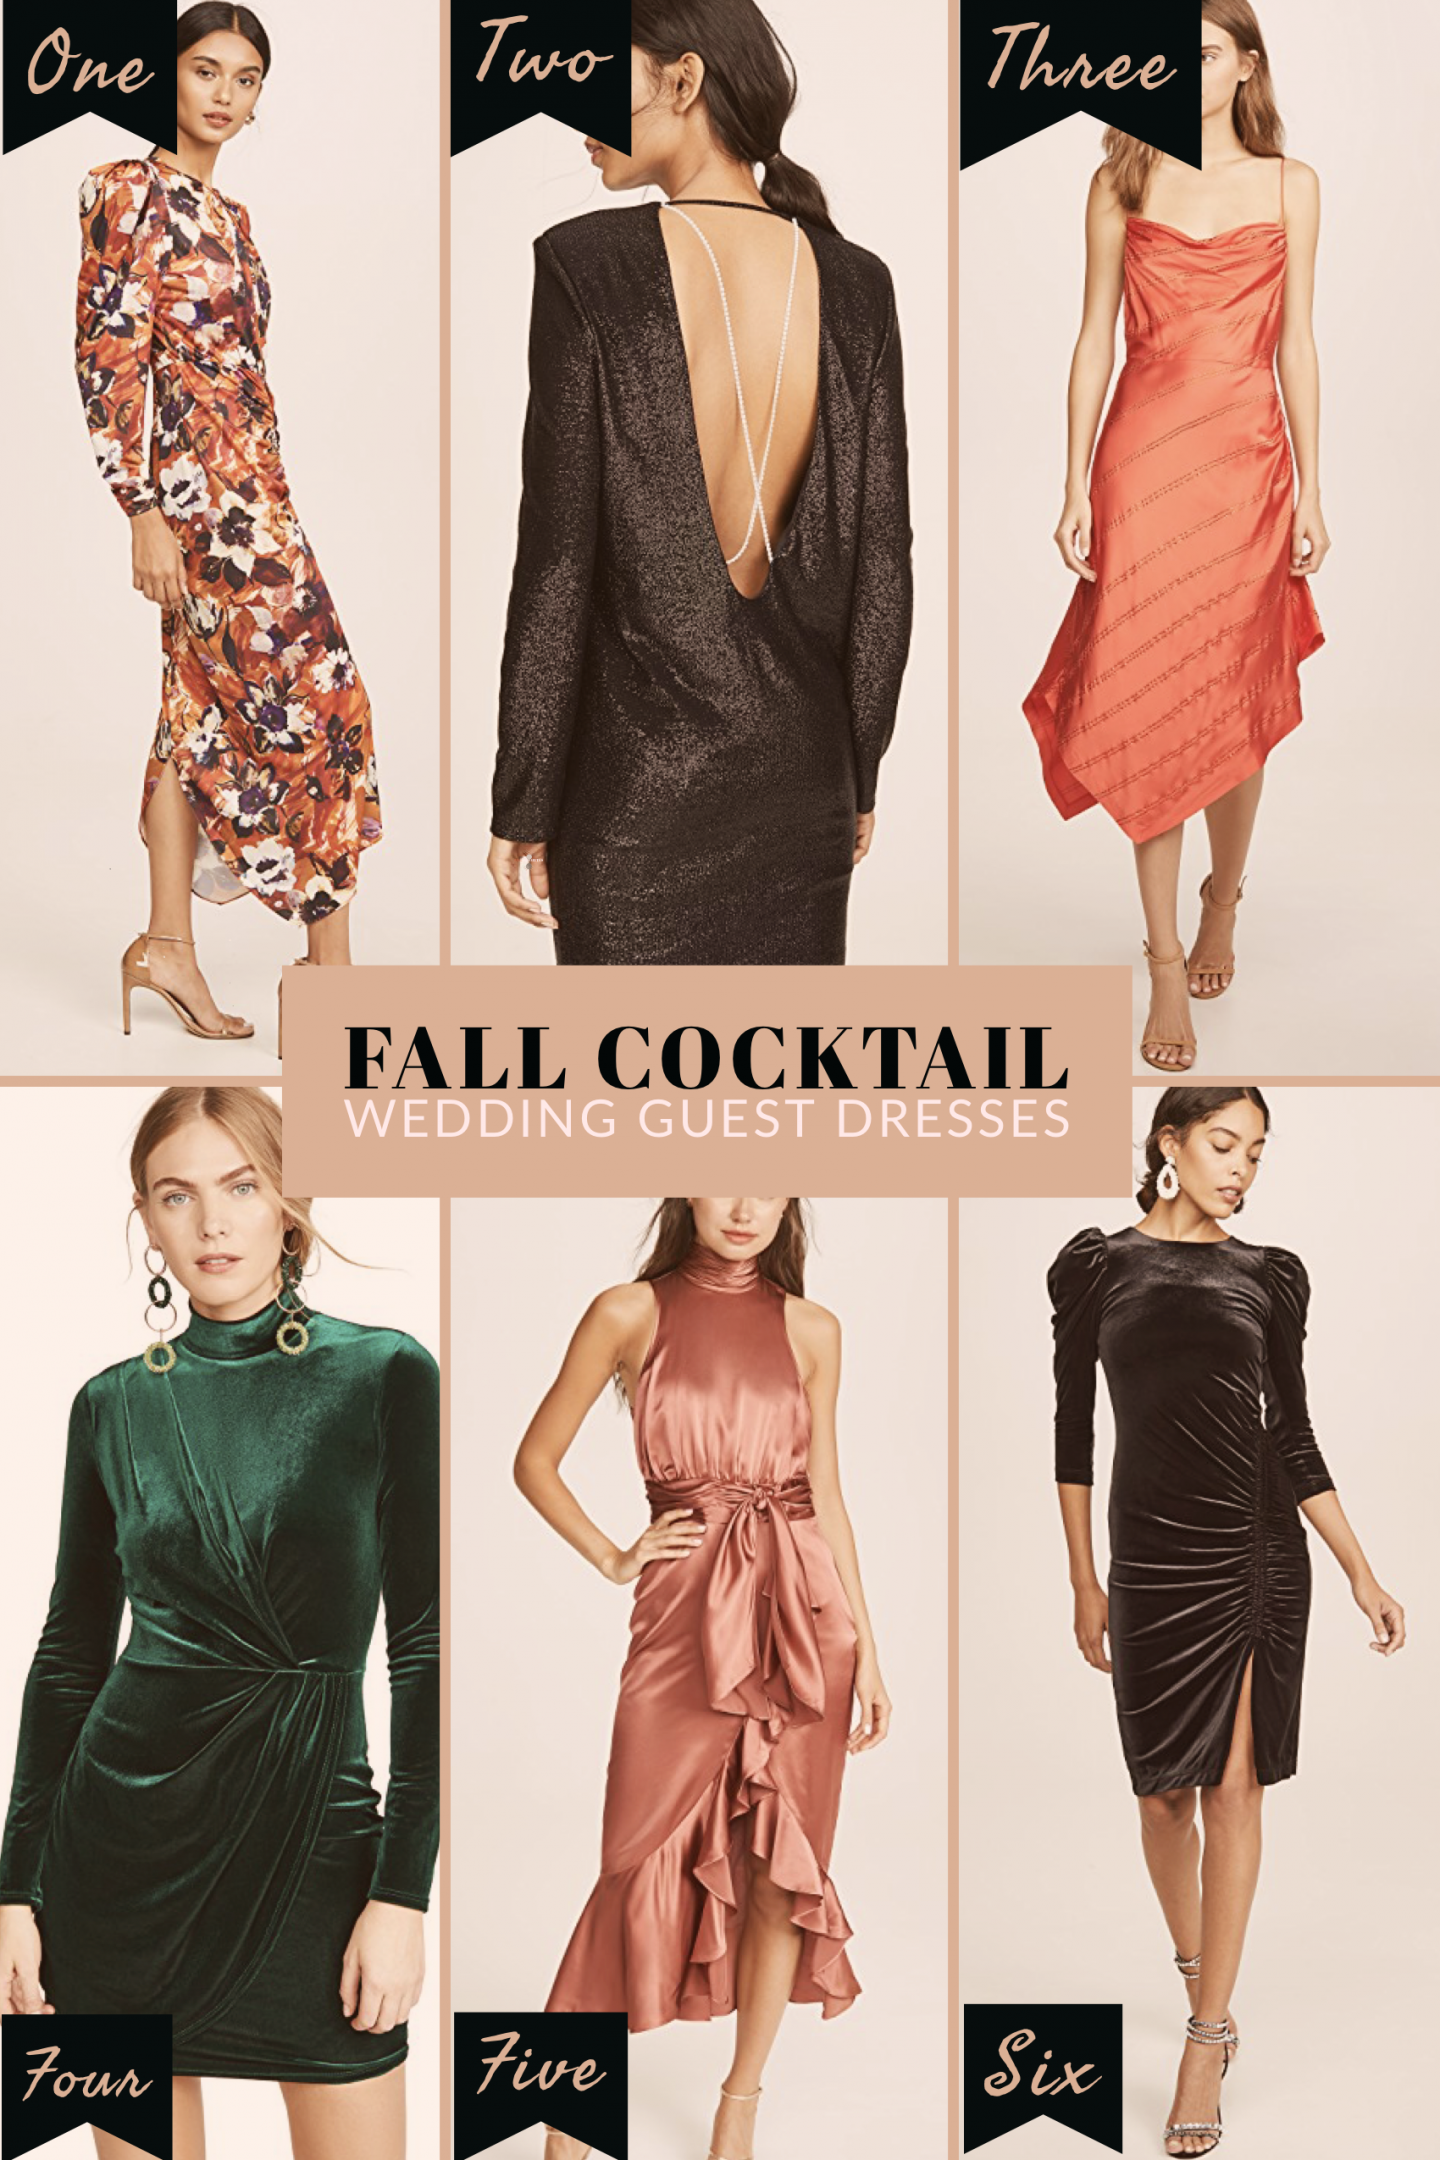 Fall wedding guest cocktail dresses